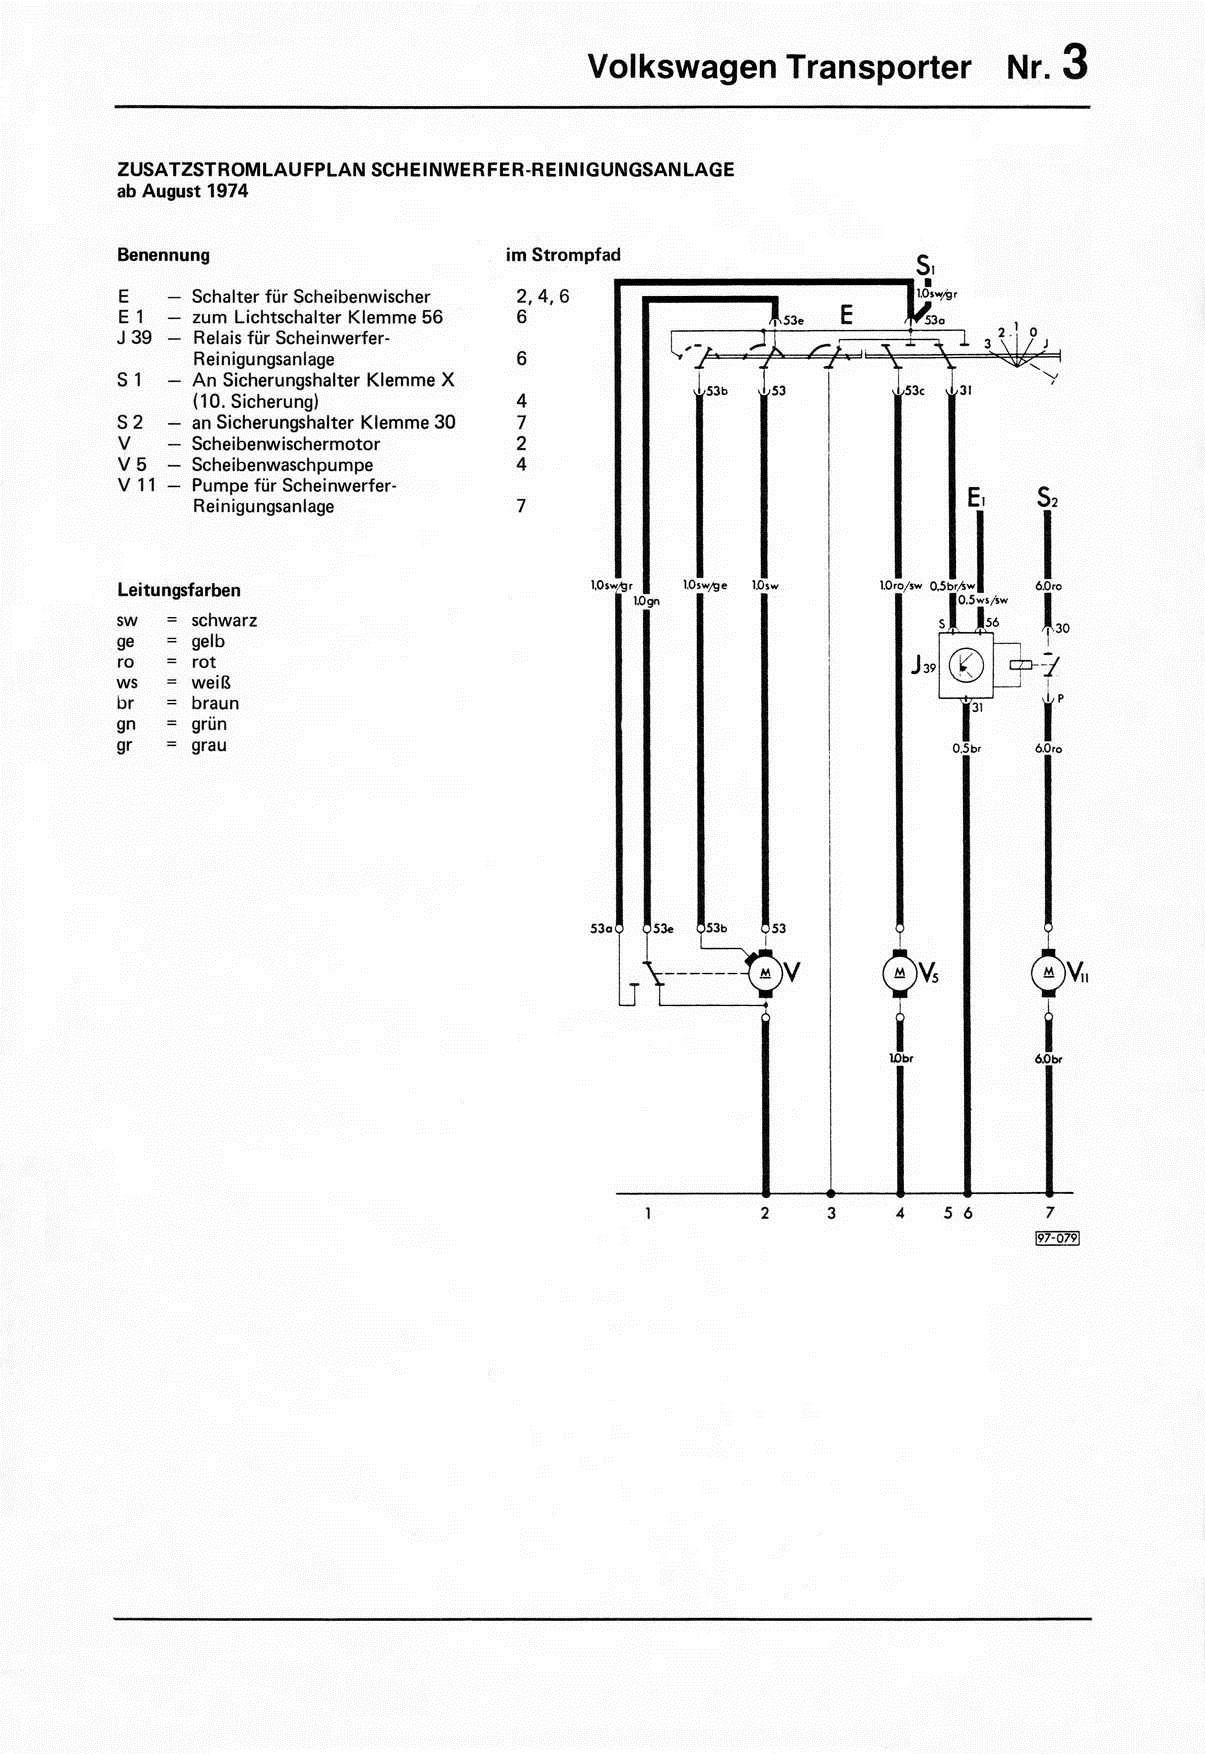 vw double relay wiring diagrams 1978 | wiring library vw double relay wiring diagrams 1978 12 volt integrated diode relay wiring diagrams #14